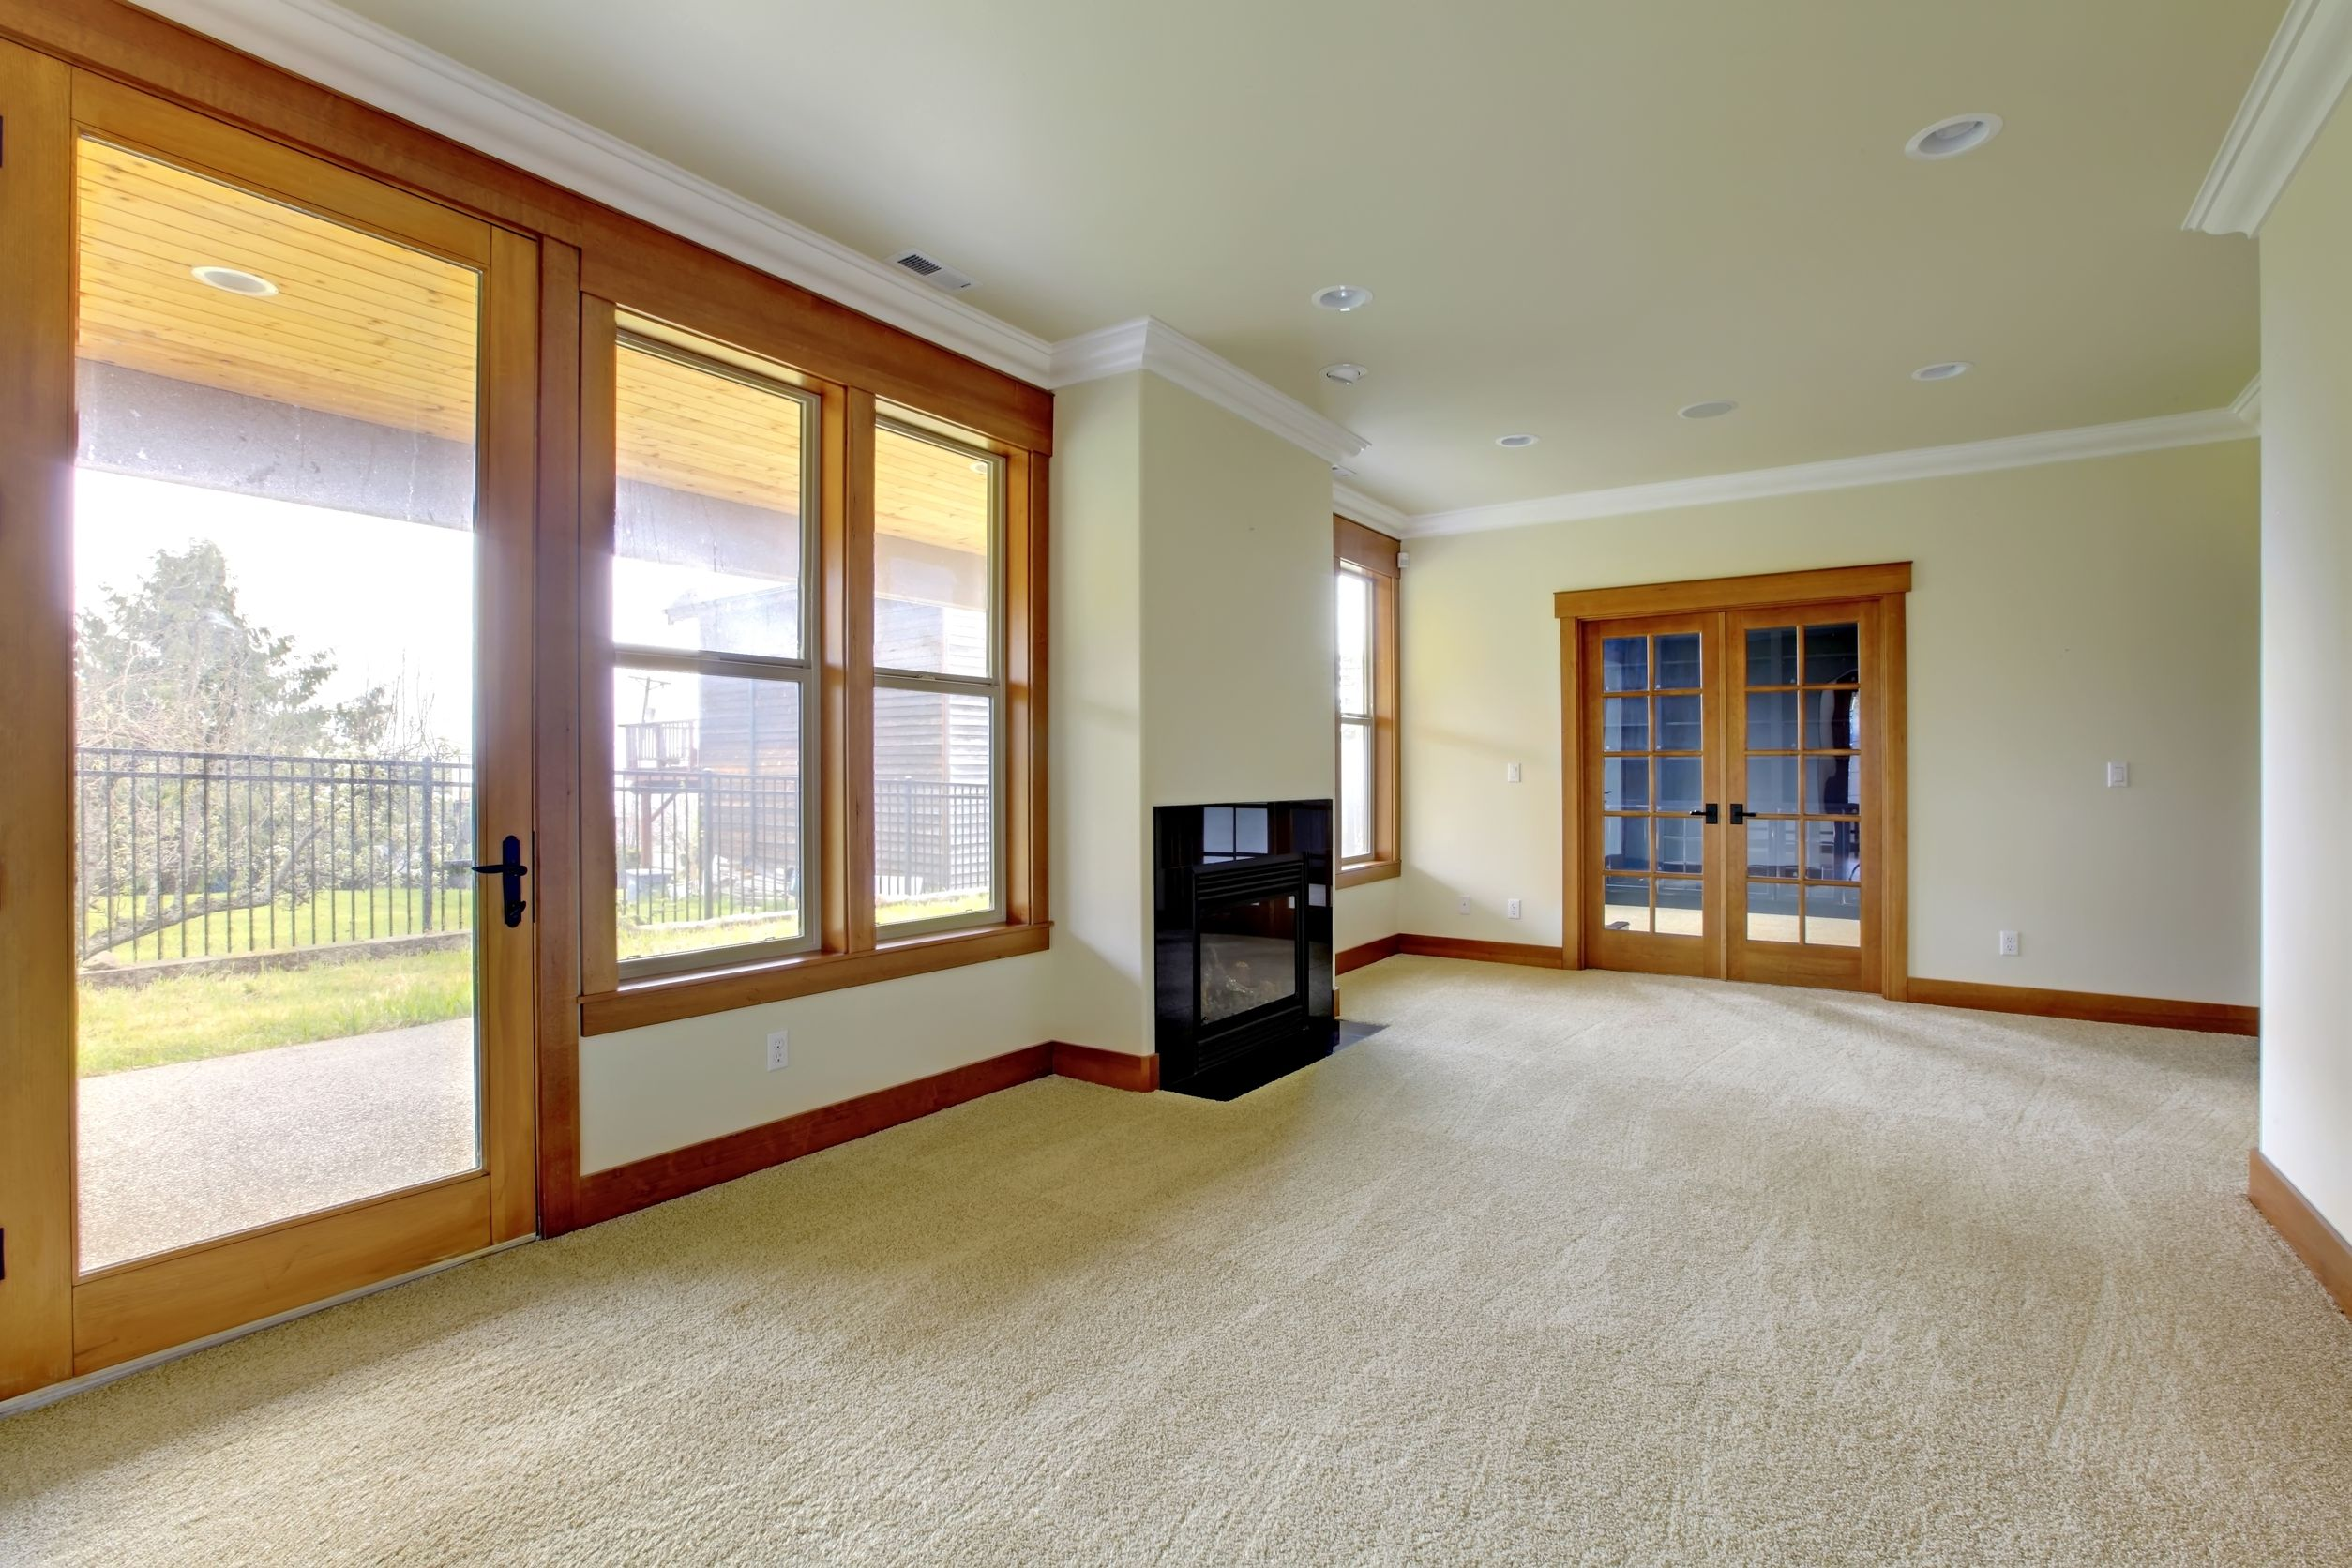 18283820 - empty large room with fireplace. new luxury home interior.